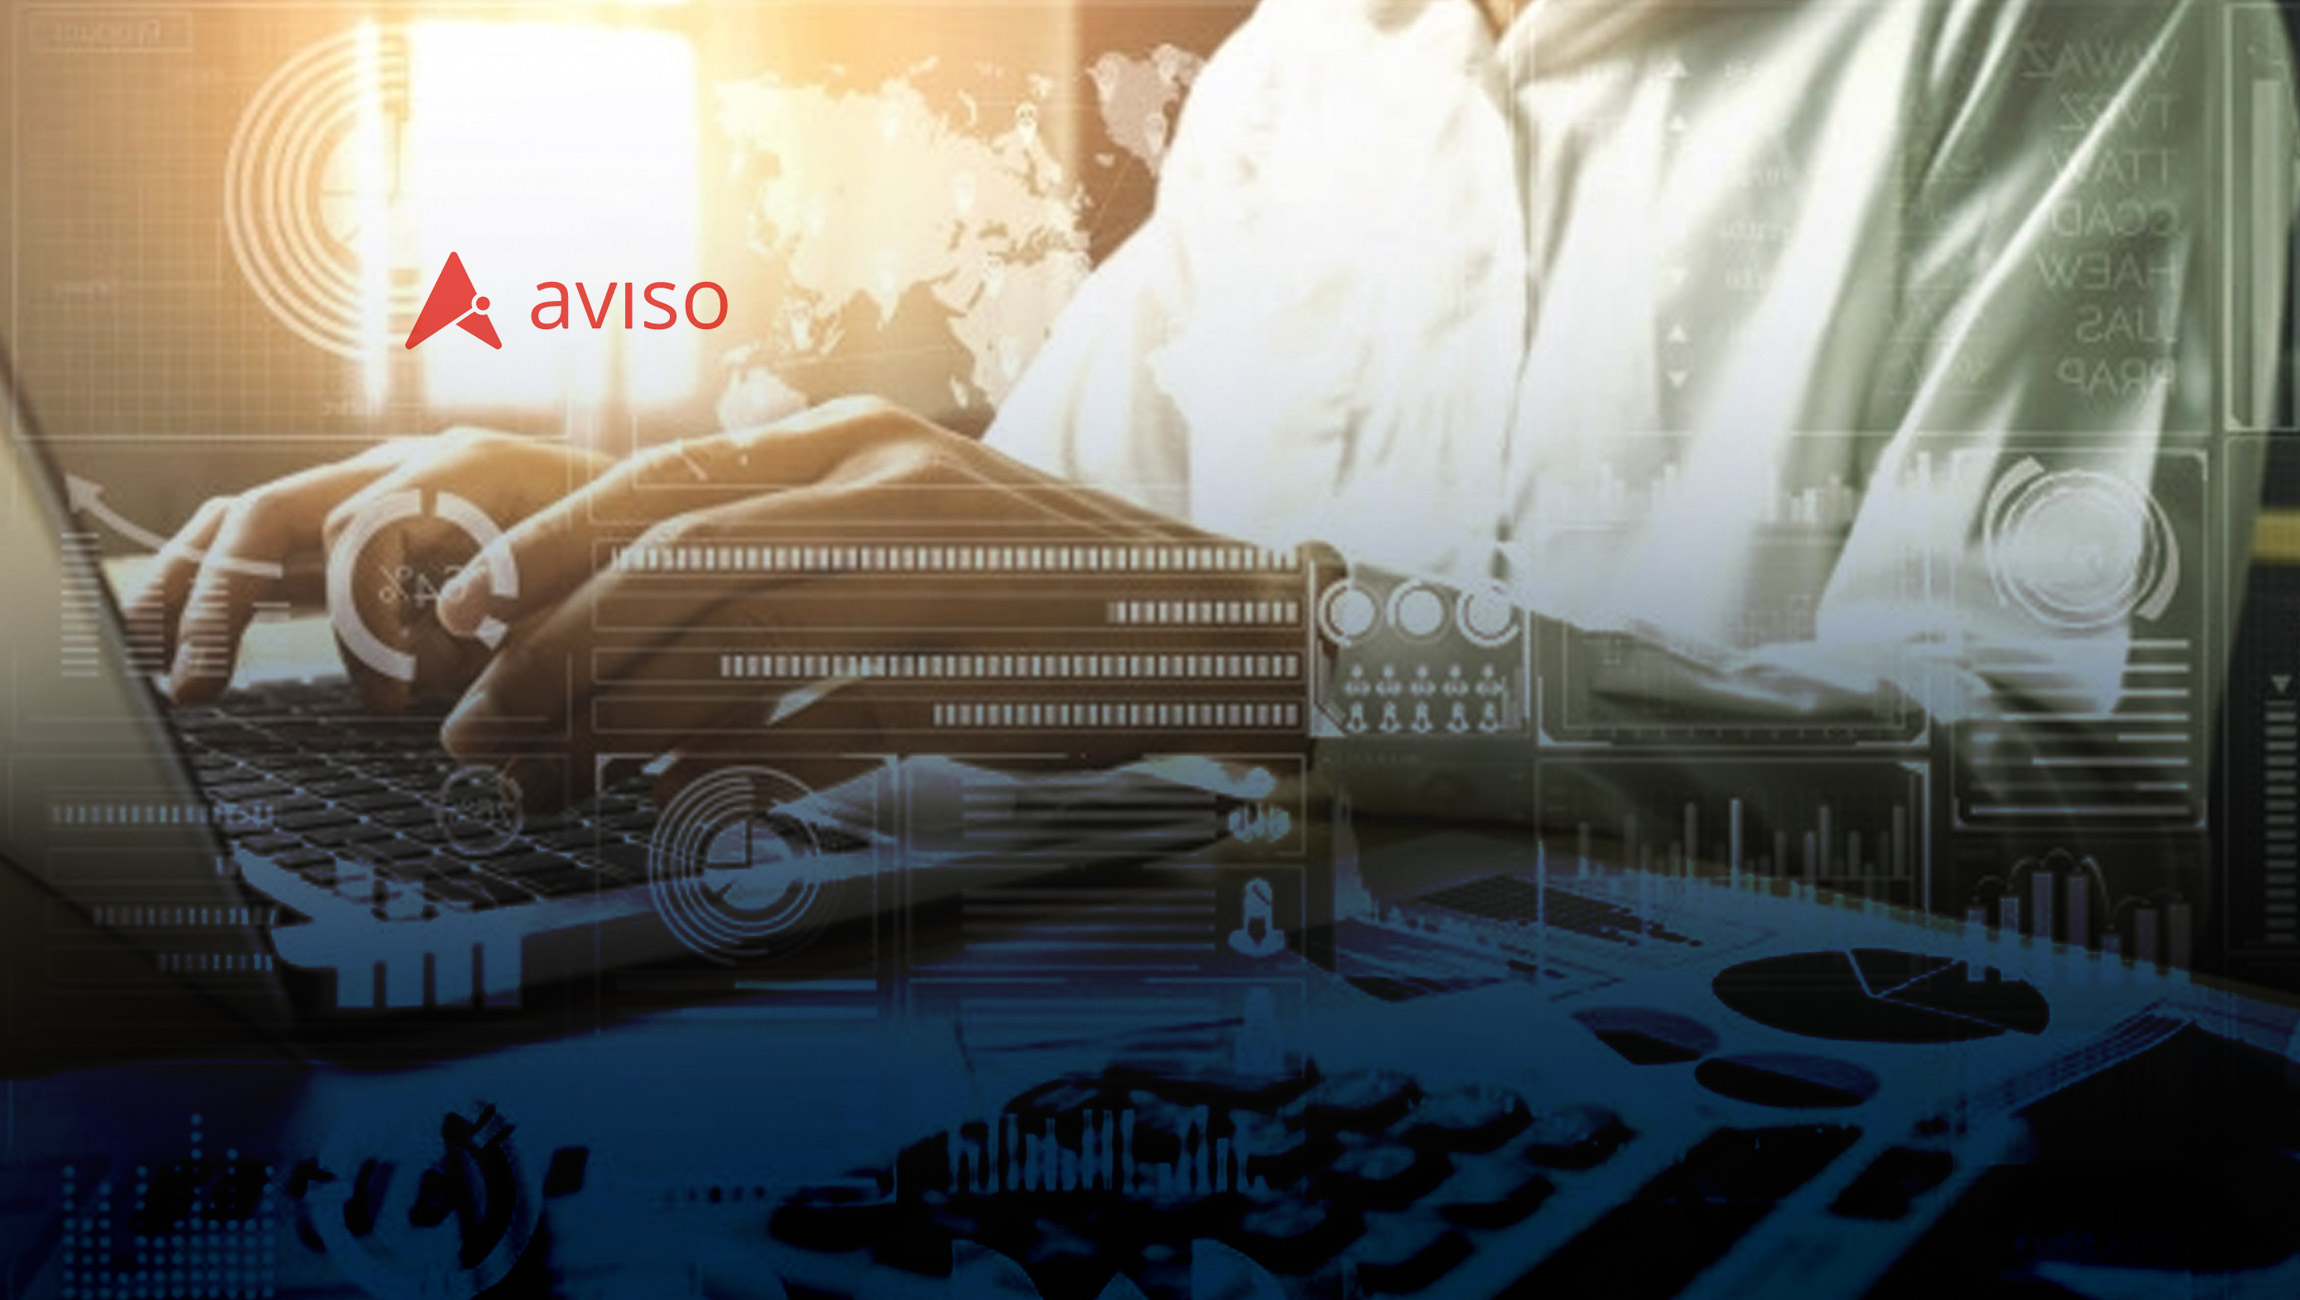 Aviso Launches Real-Time Revenue Analytics Features and Expands into 3 new Categories with G2